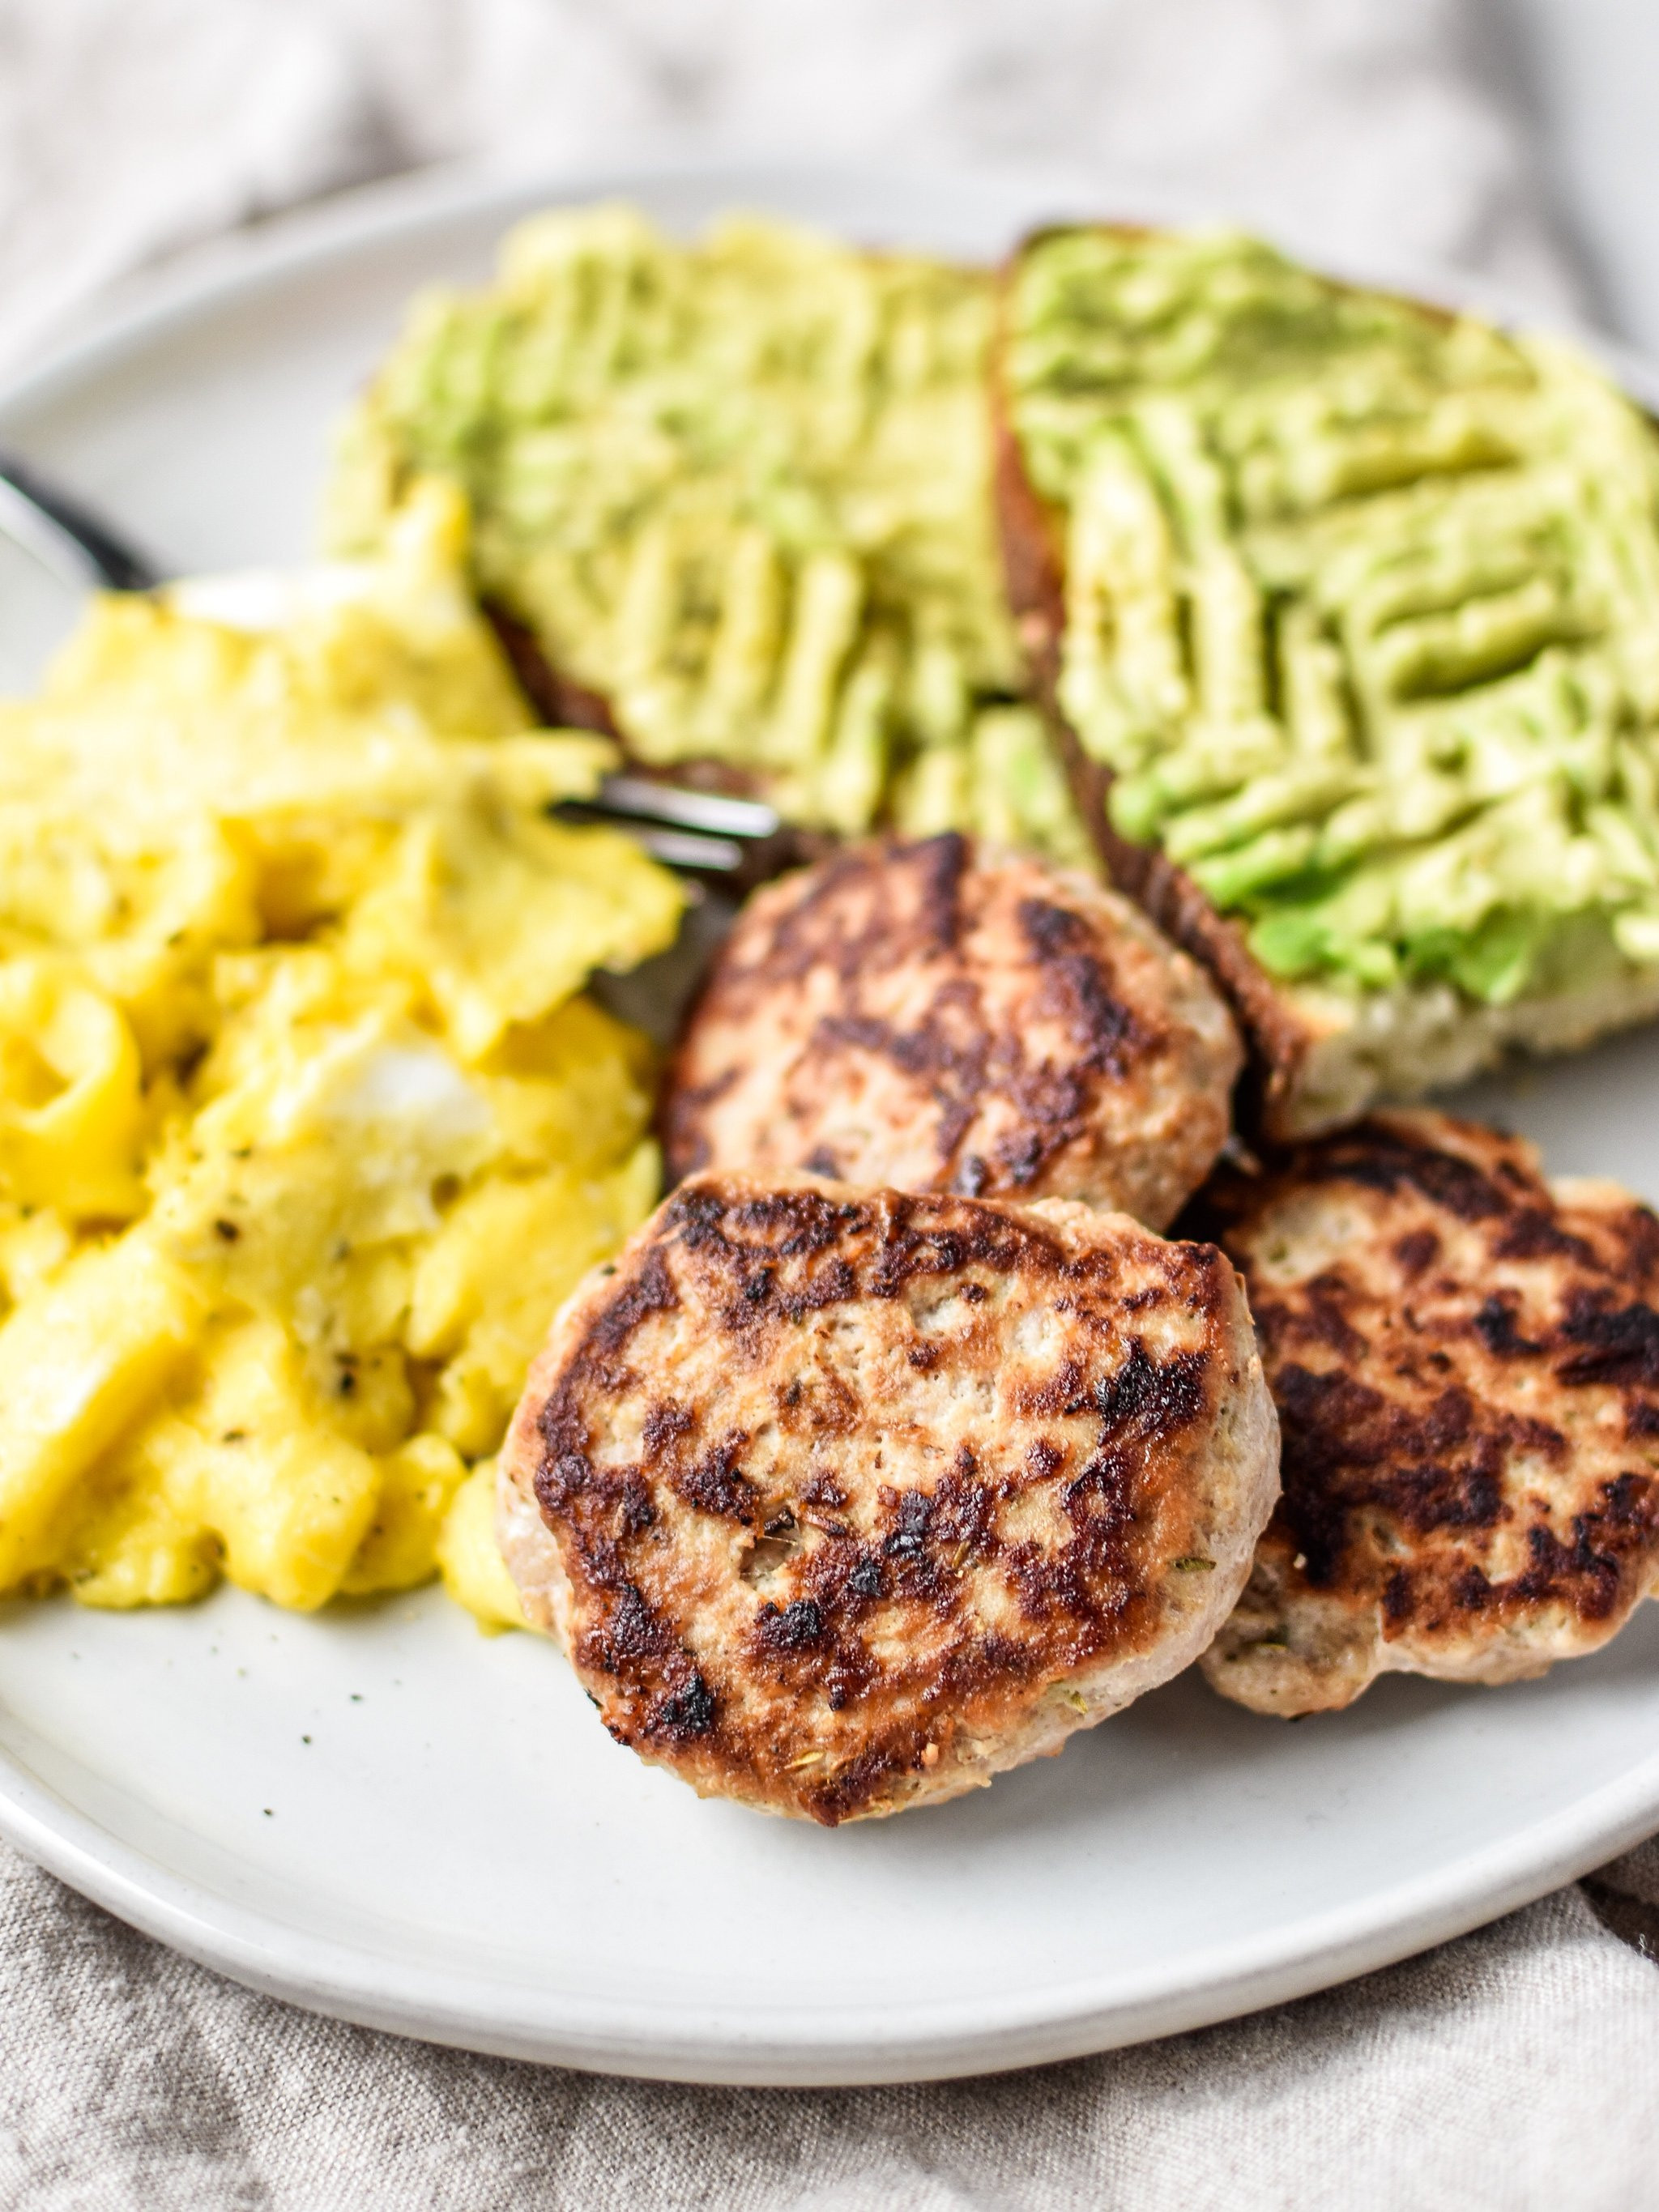 A plate of ground turkey breakfast sausage patties with eggs and avocado toast.